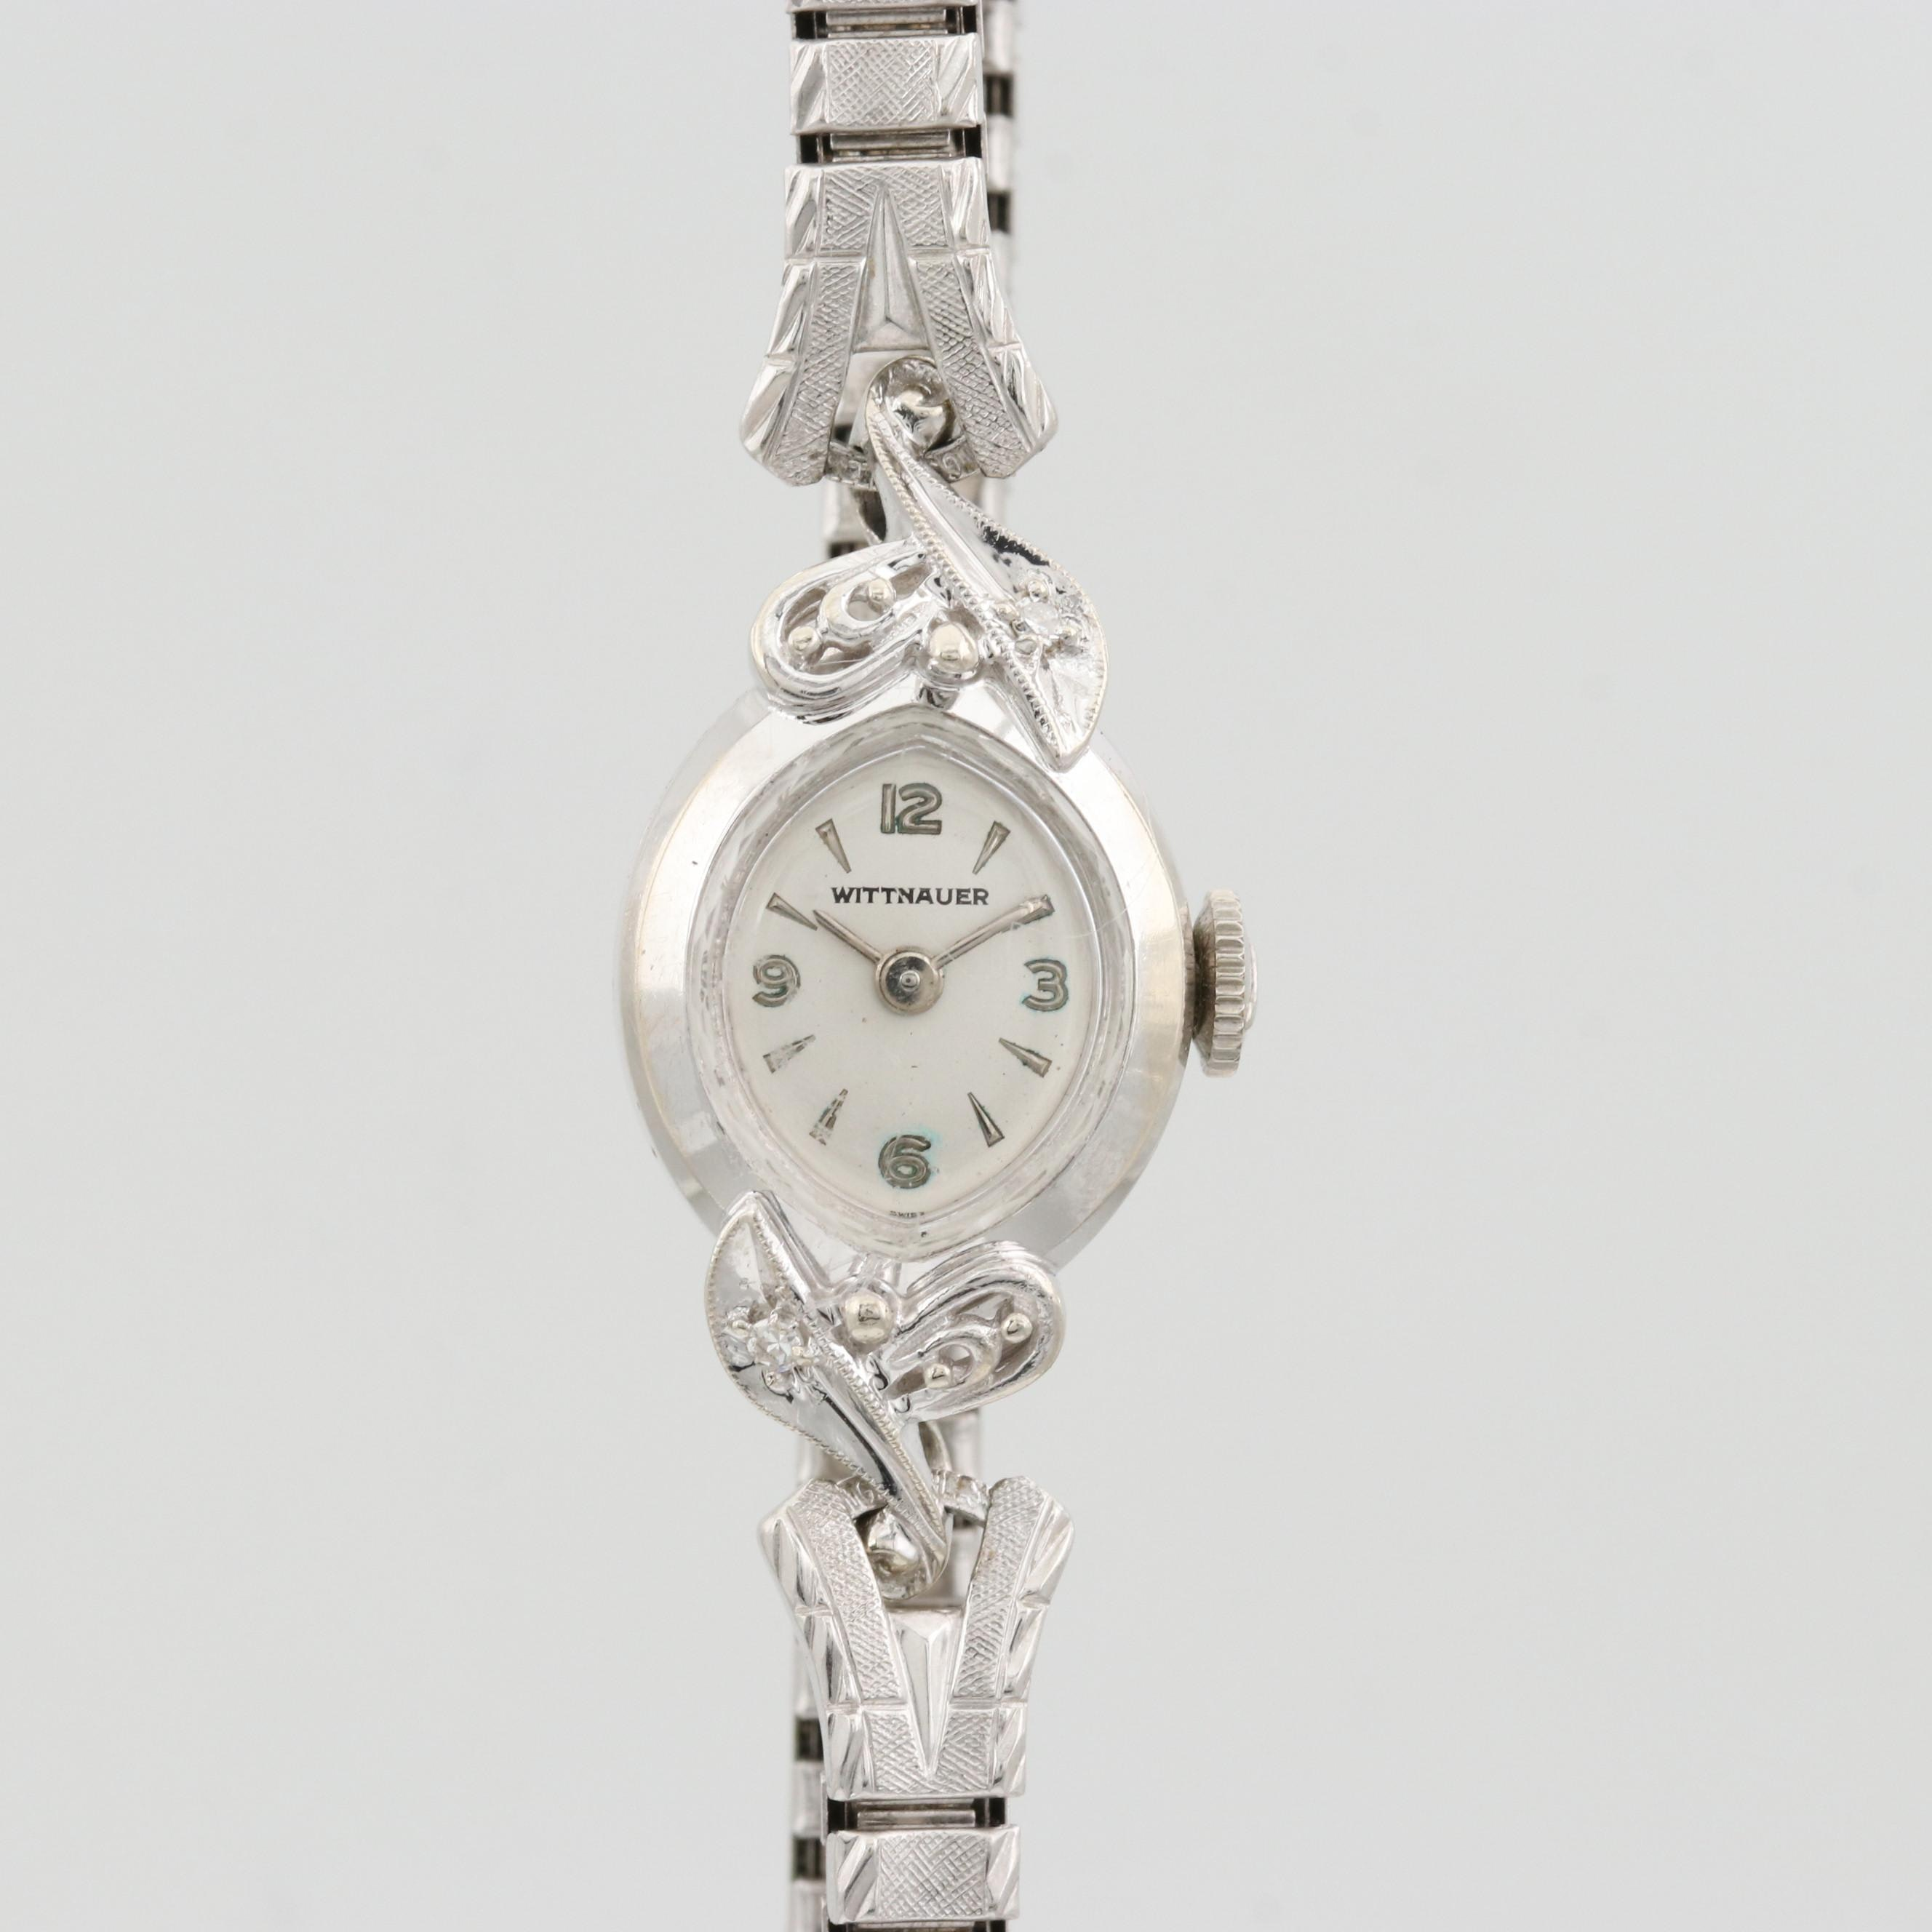 Wittnauer 14K White Gold and Diamond Lug Wristwatch